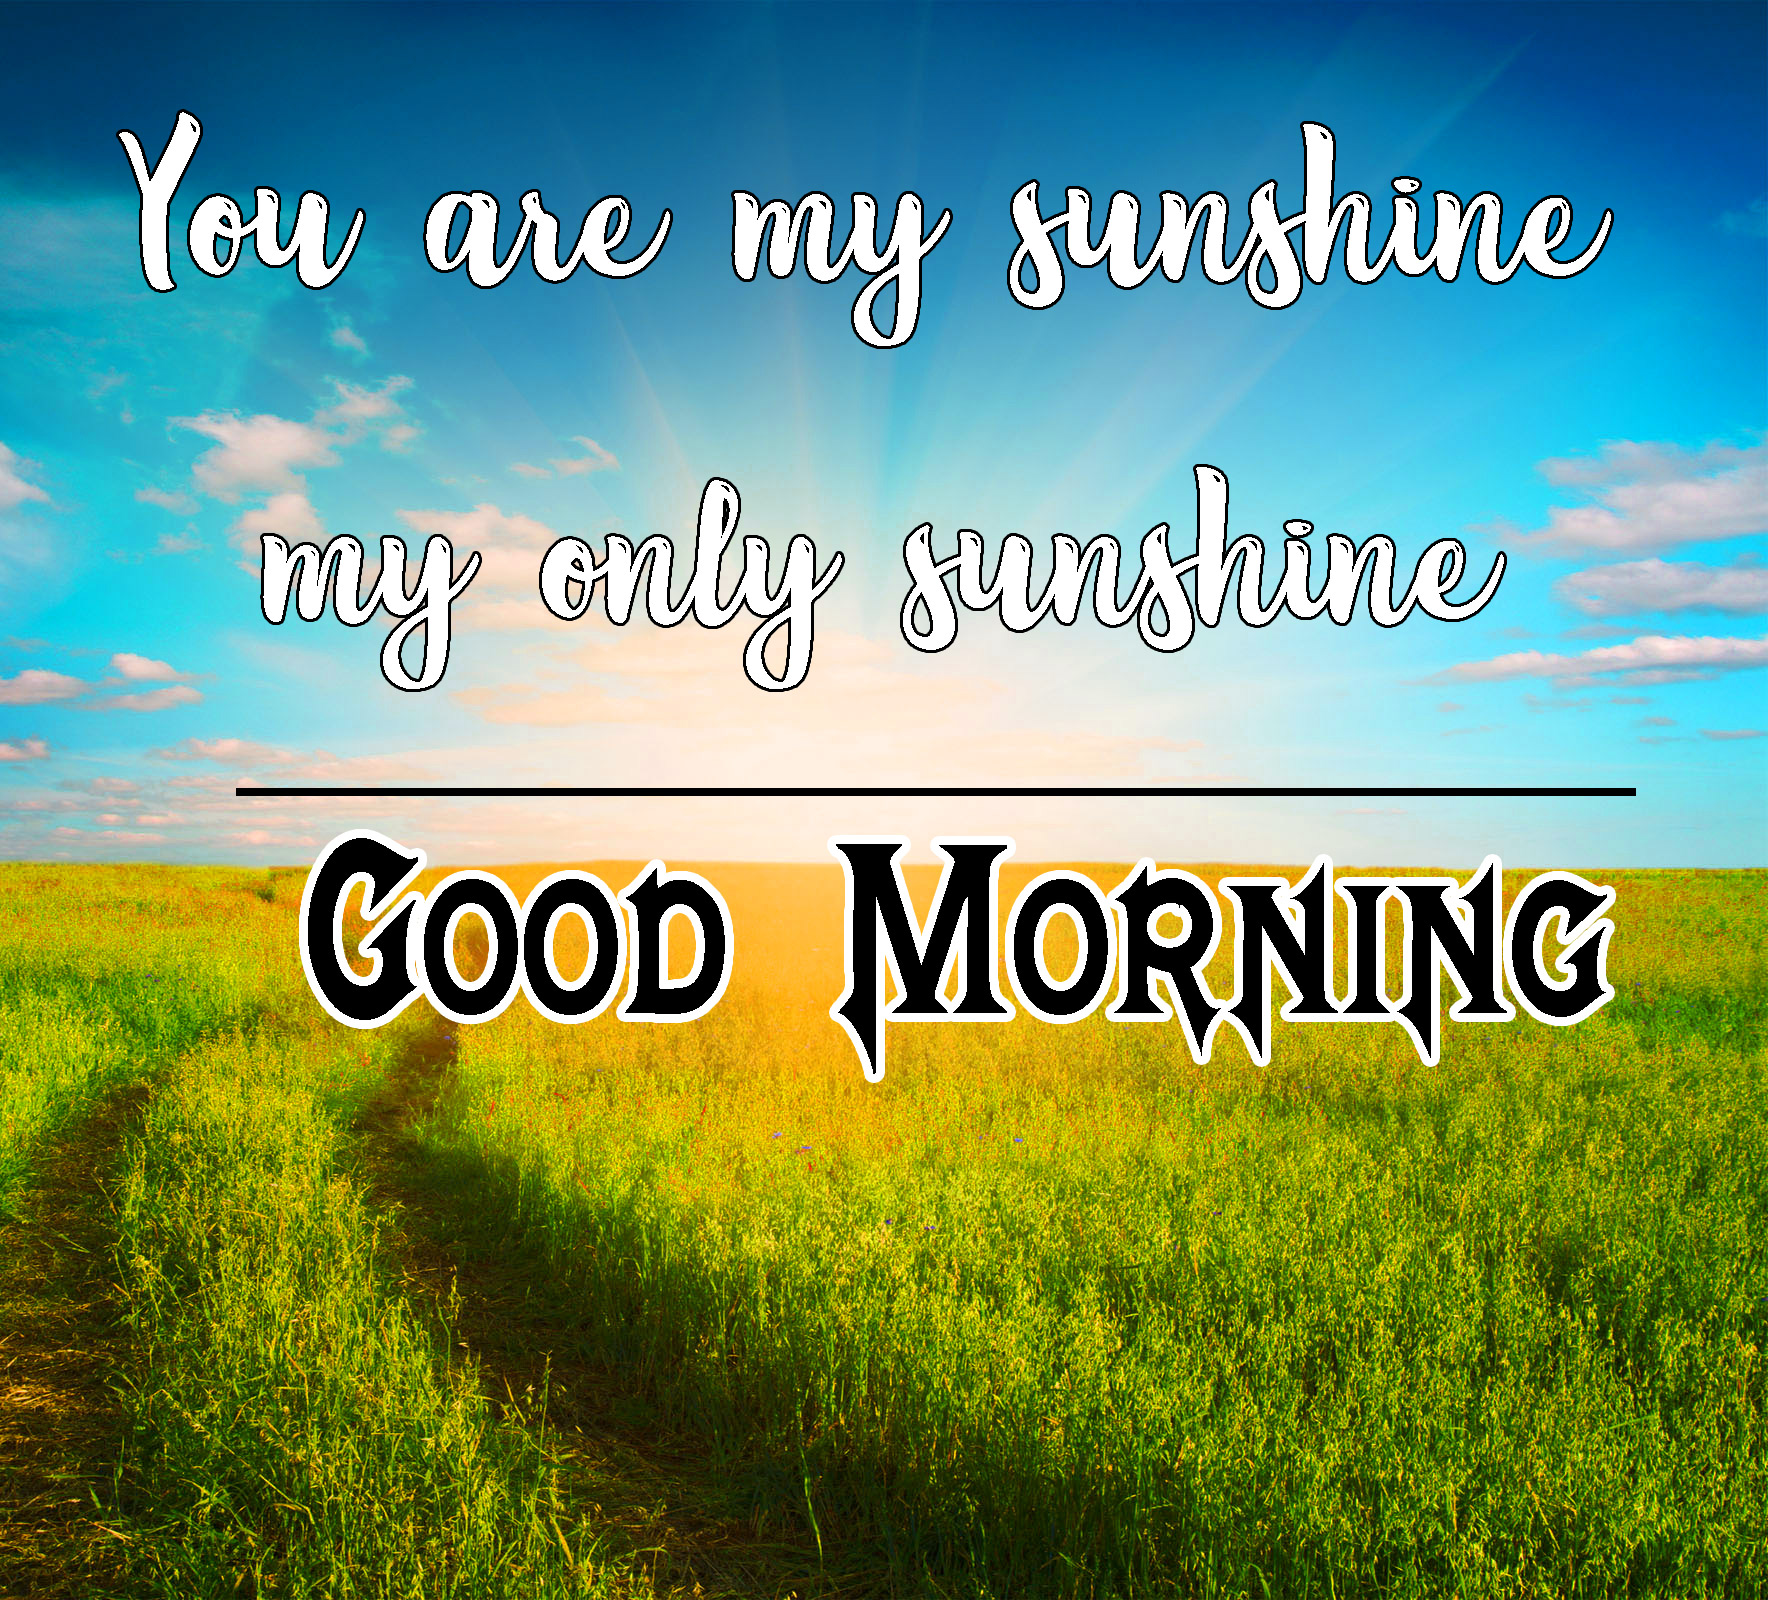 Sunsine Good Morning Images 20